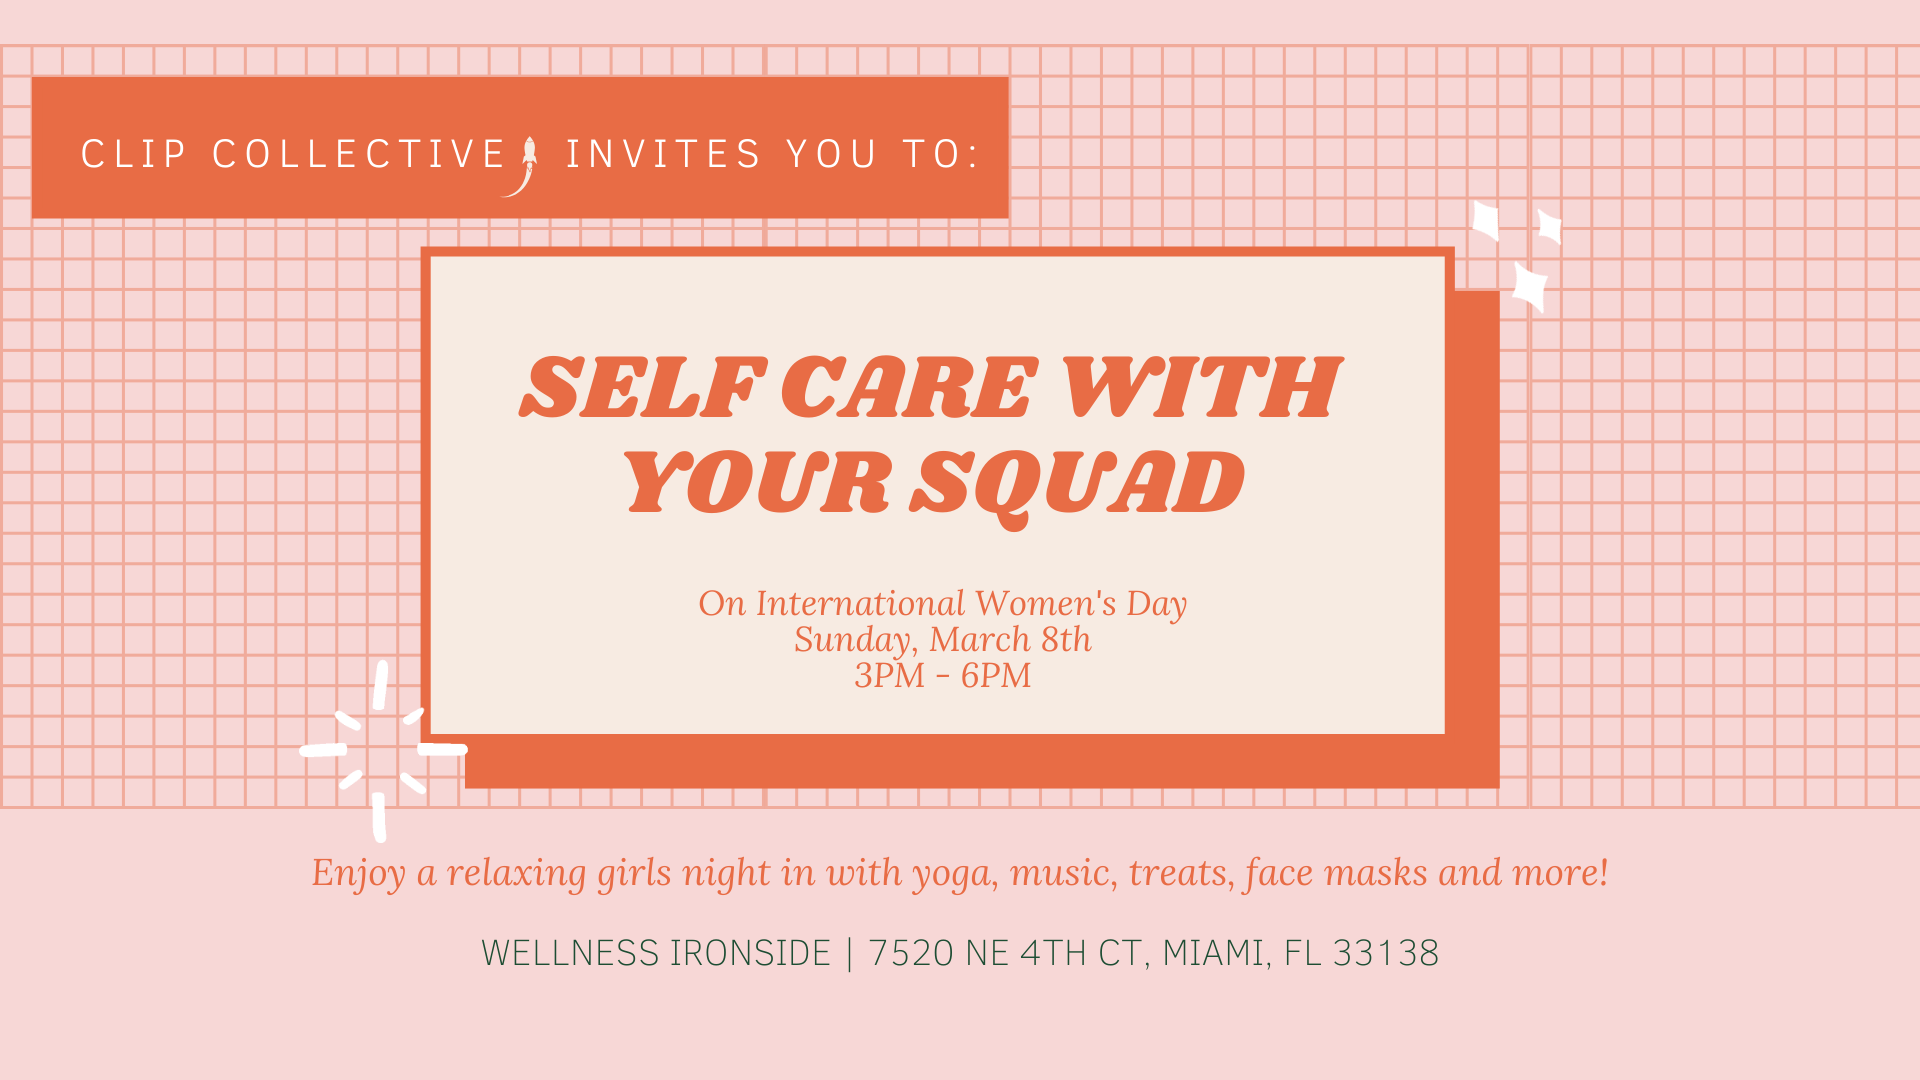 International Womens Day Self Care with Your Squad Tickets 1920x1080